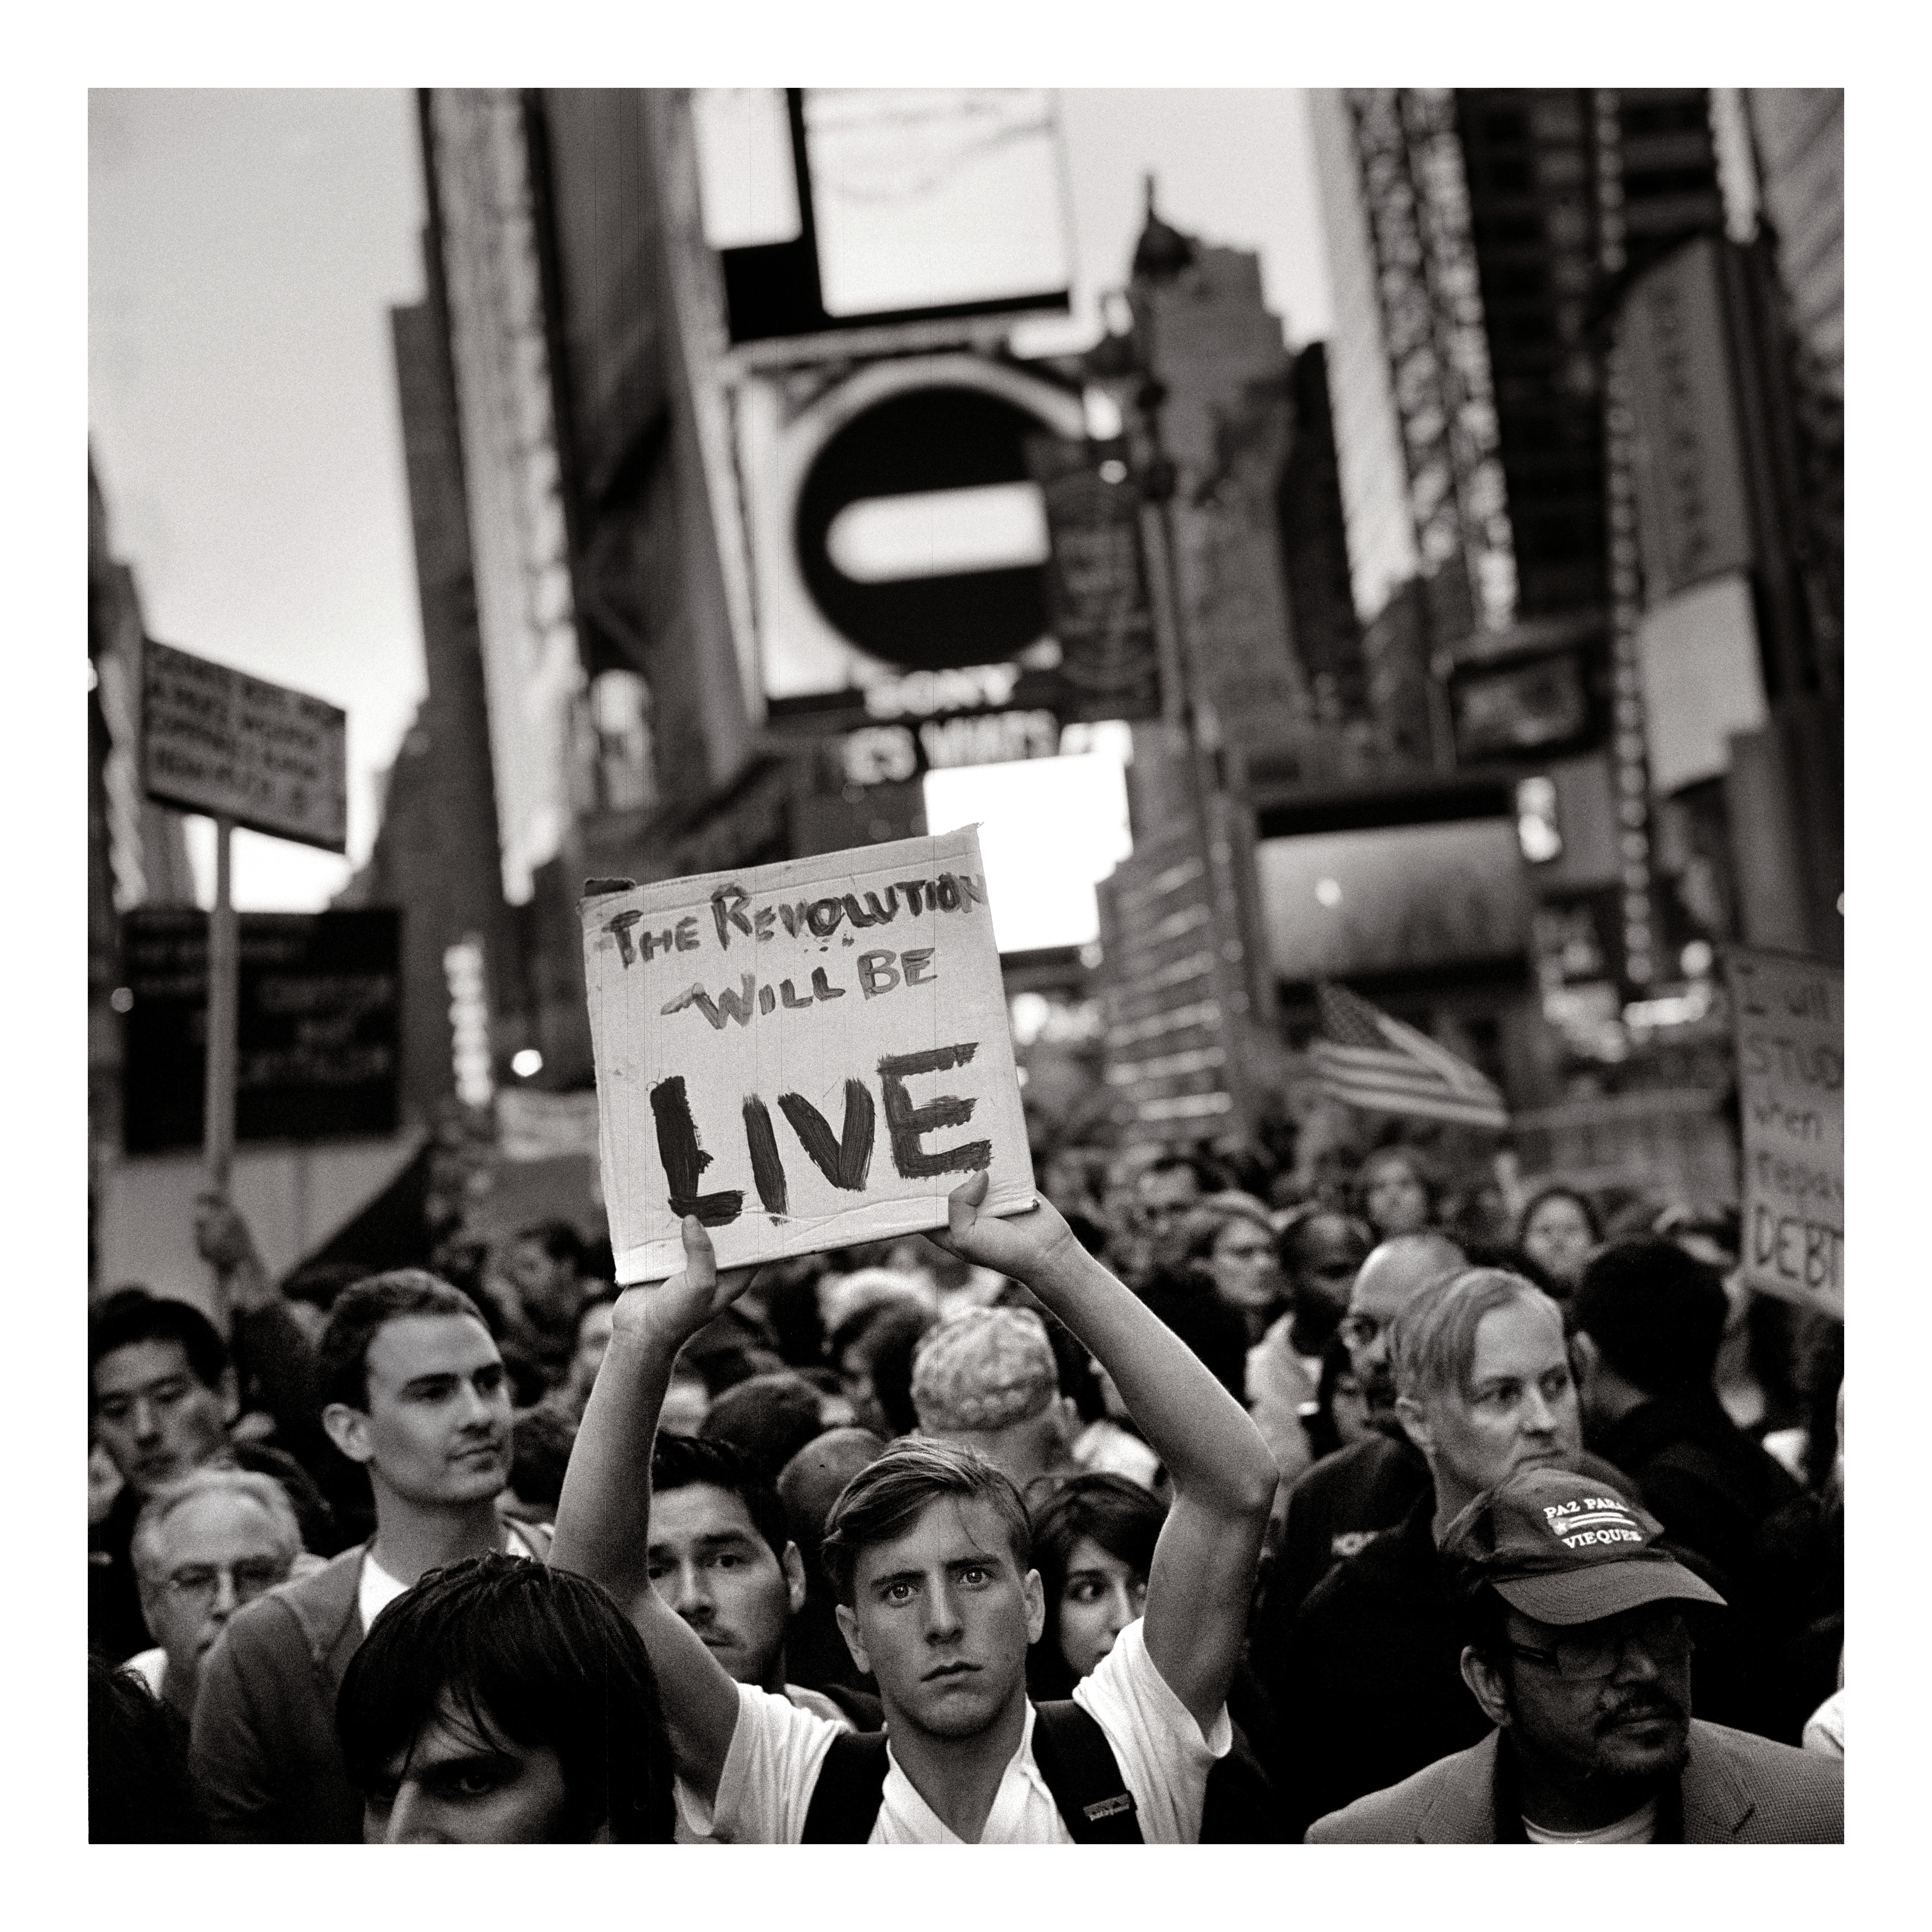 A demonstrator with the Occupy Wallstreet Movement, 2011, giclee print, © Ashley Gilbertson / VII